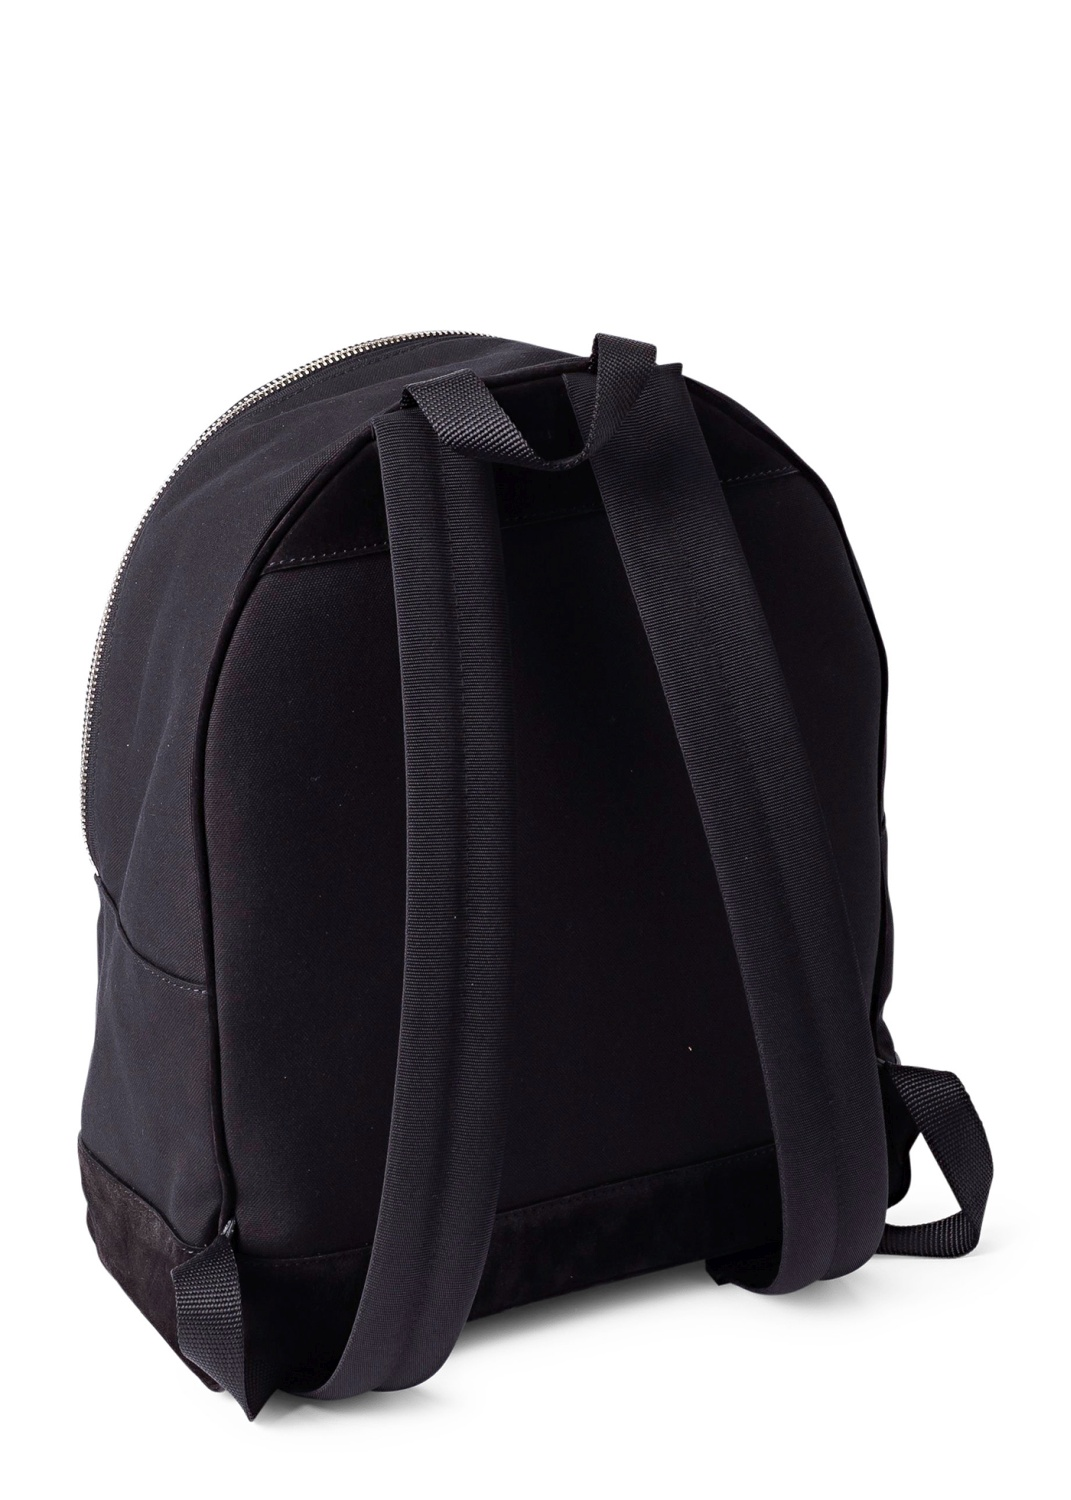 CORE LOGO CANVS/SUEDE BACKPACK image number 1